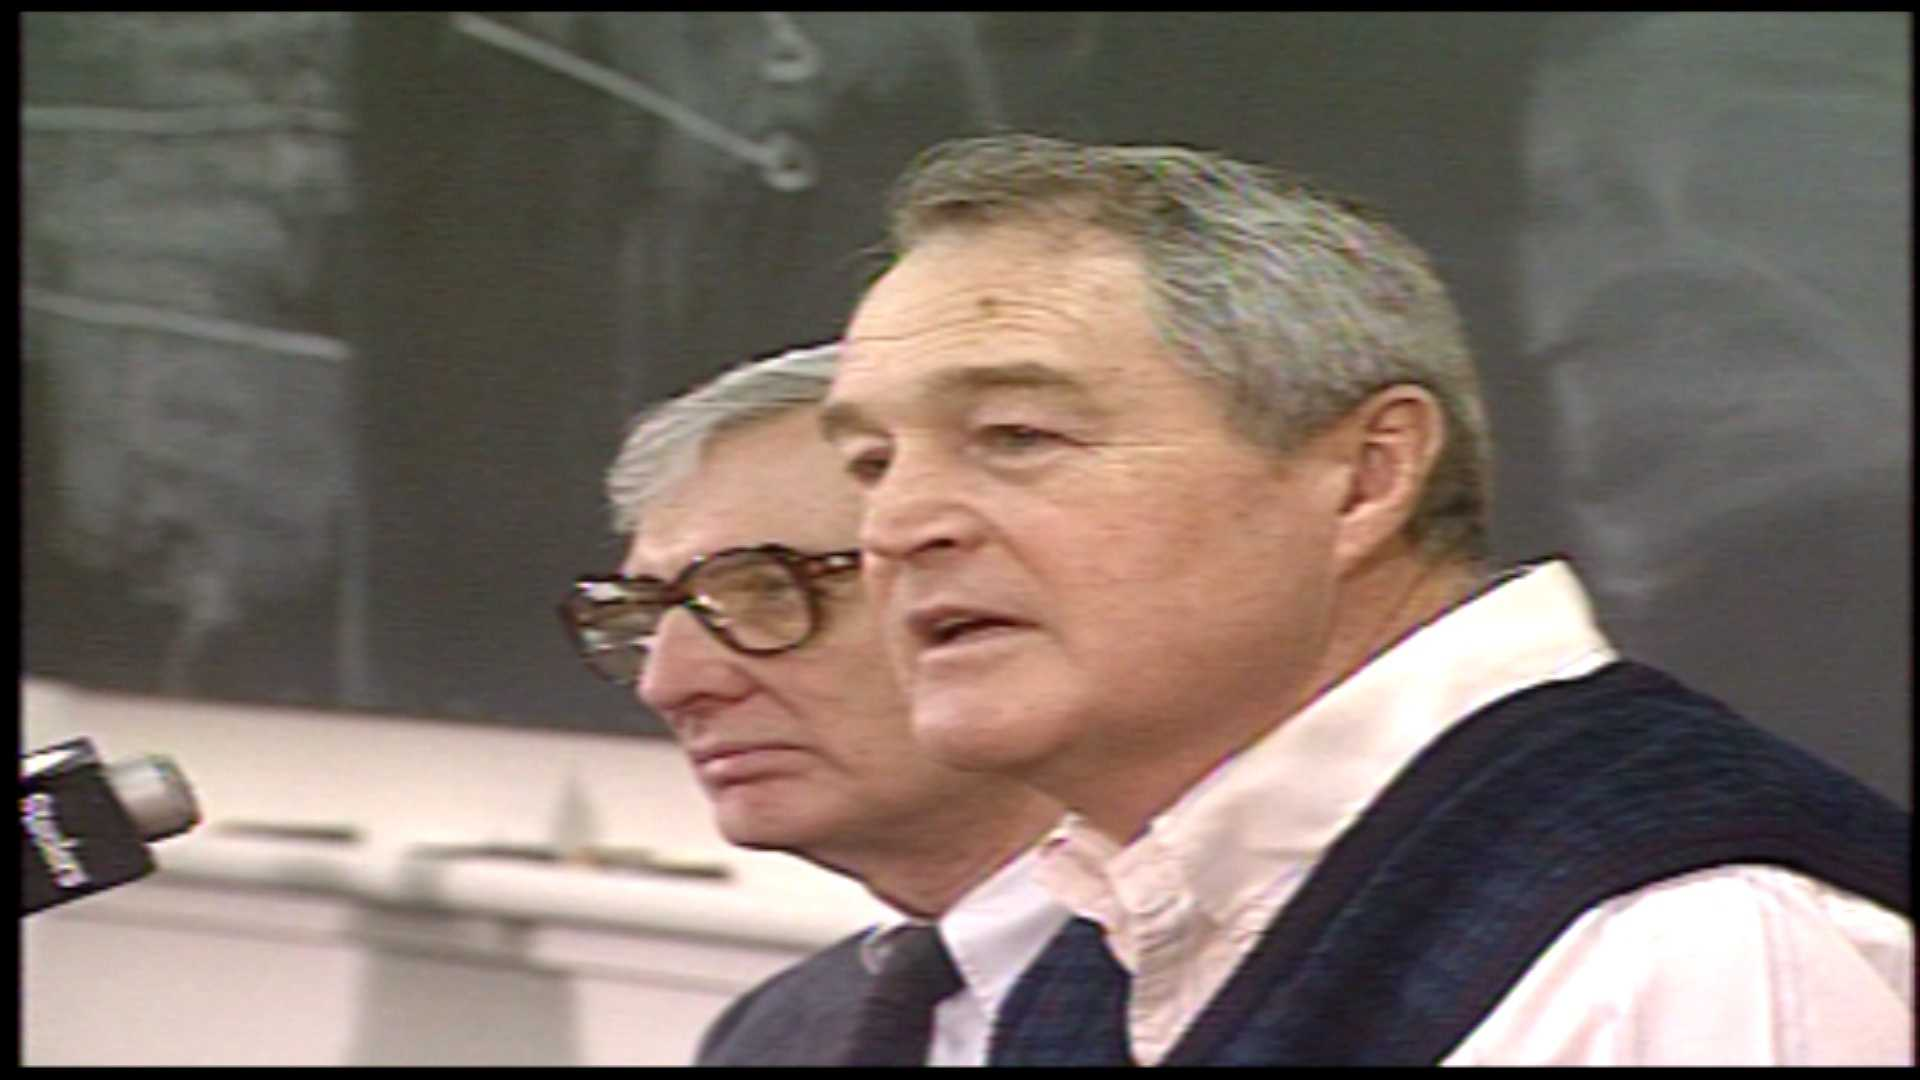 Dan Rooney and Chuck Noll in 1991